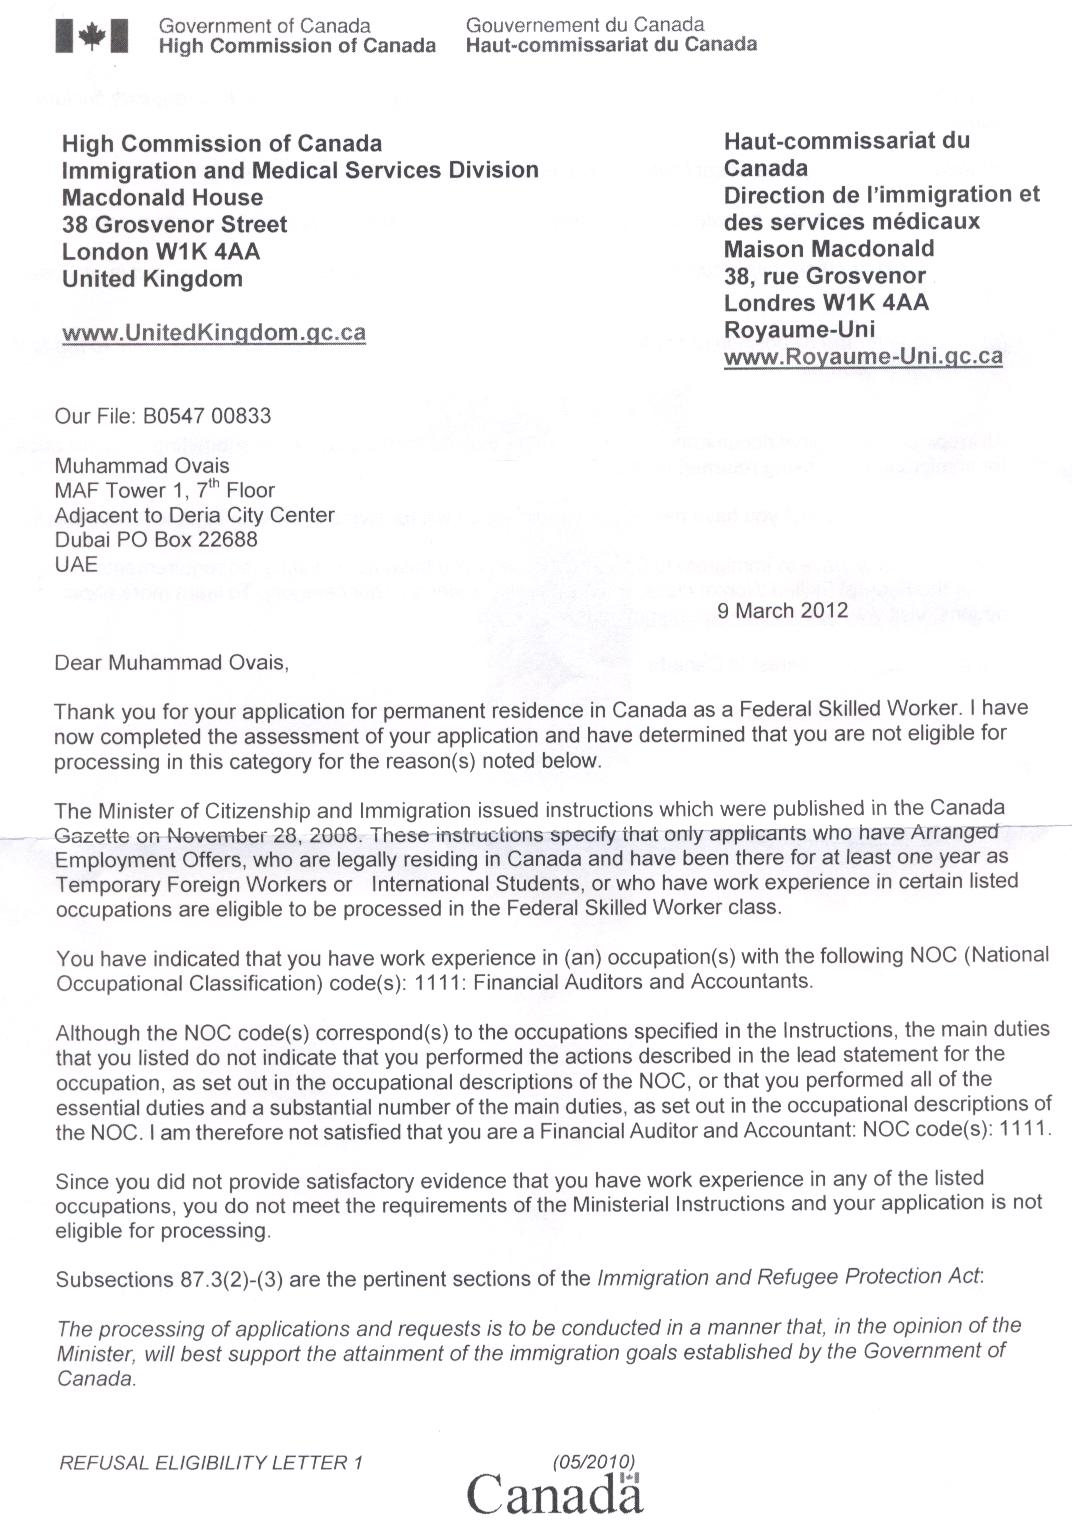 I Applied For The Immigration Under Skilled Worker Class In 2010 And Received A Refusal Letter From Cic London Dated 9th